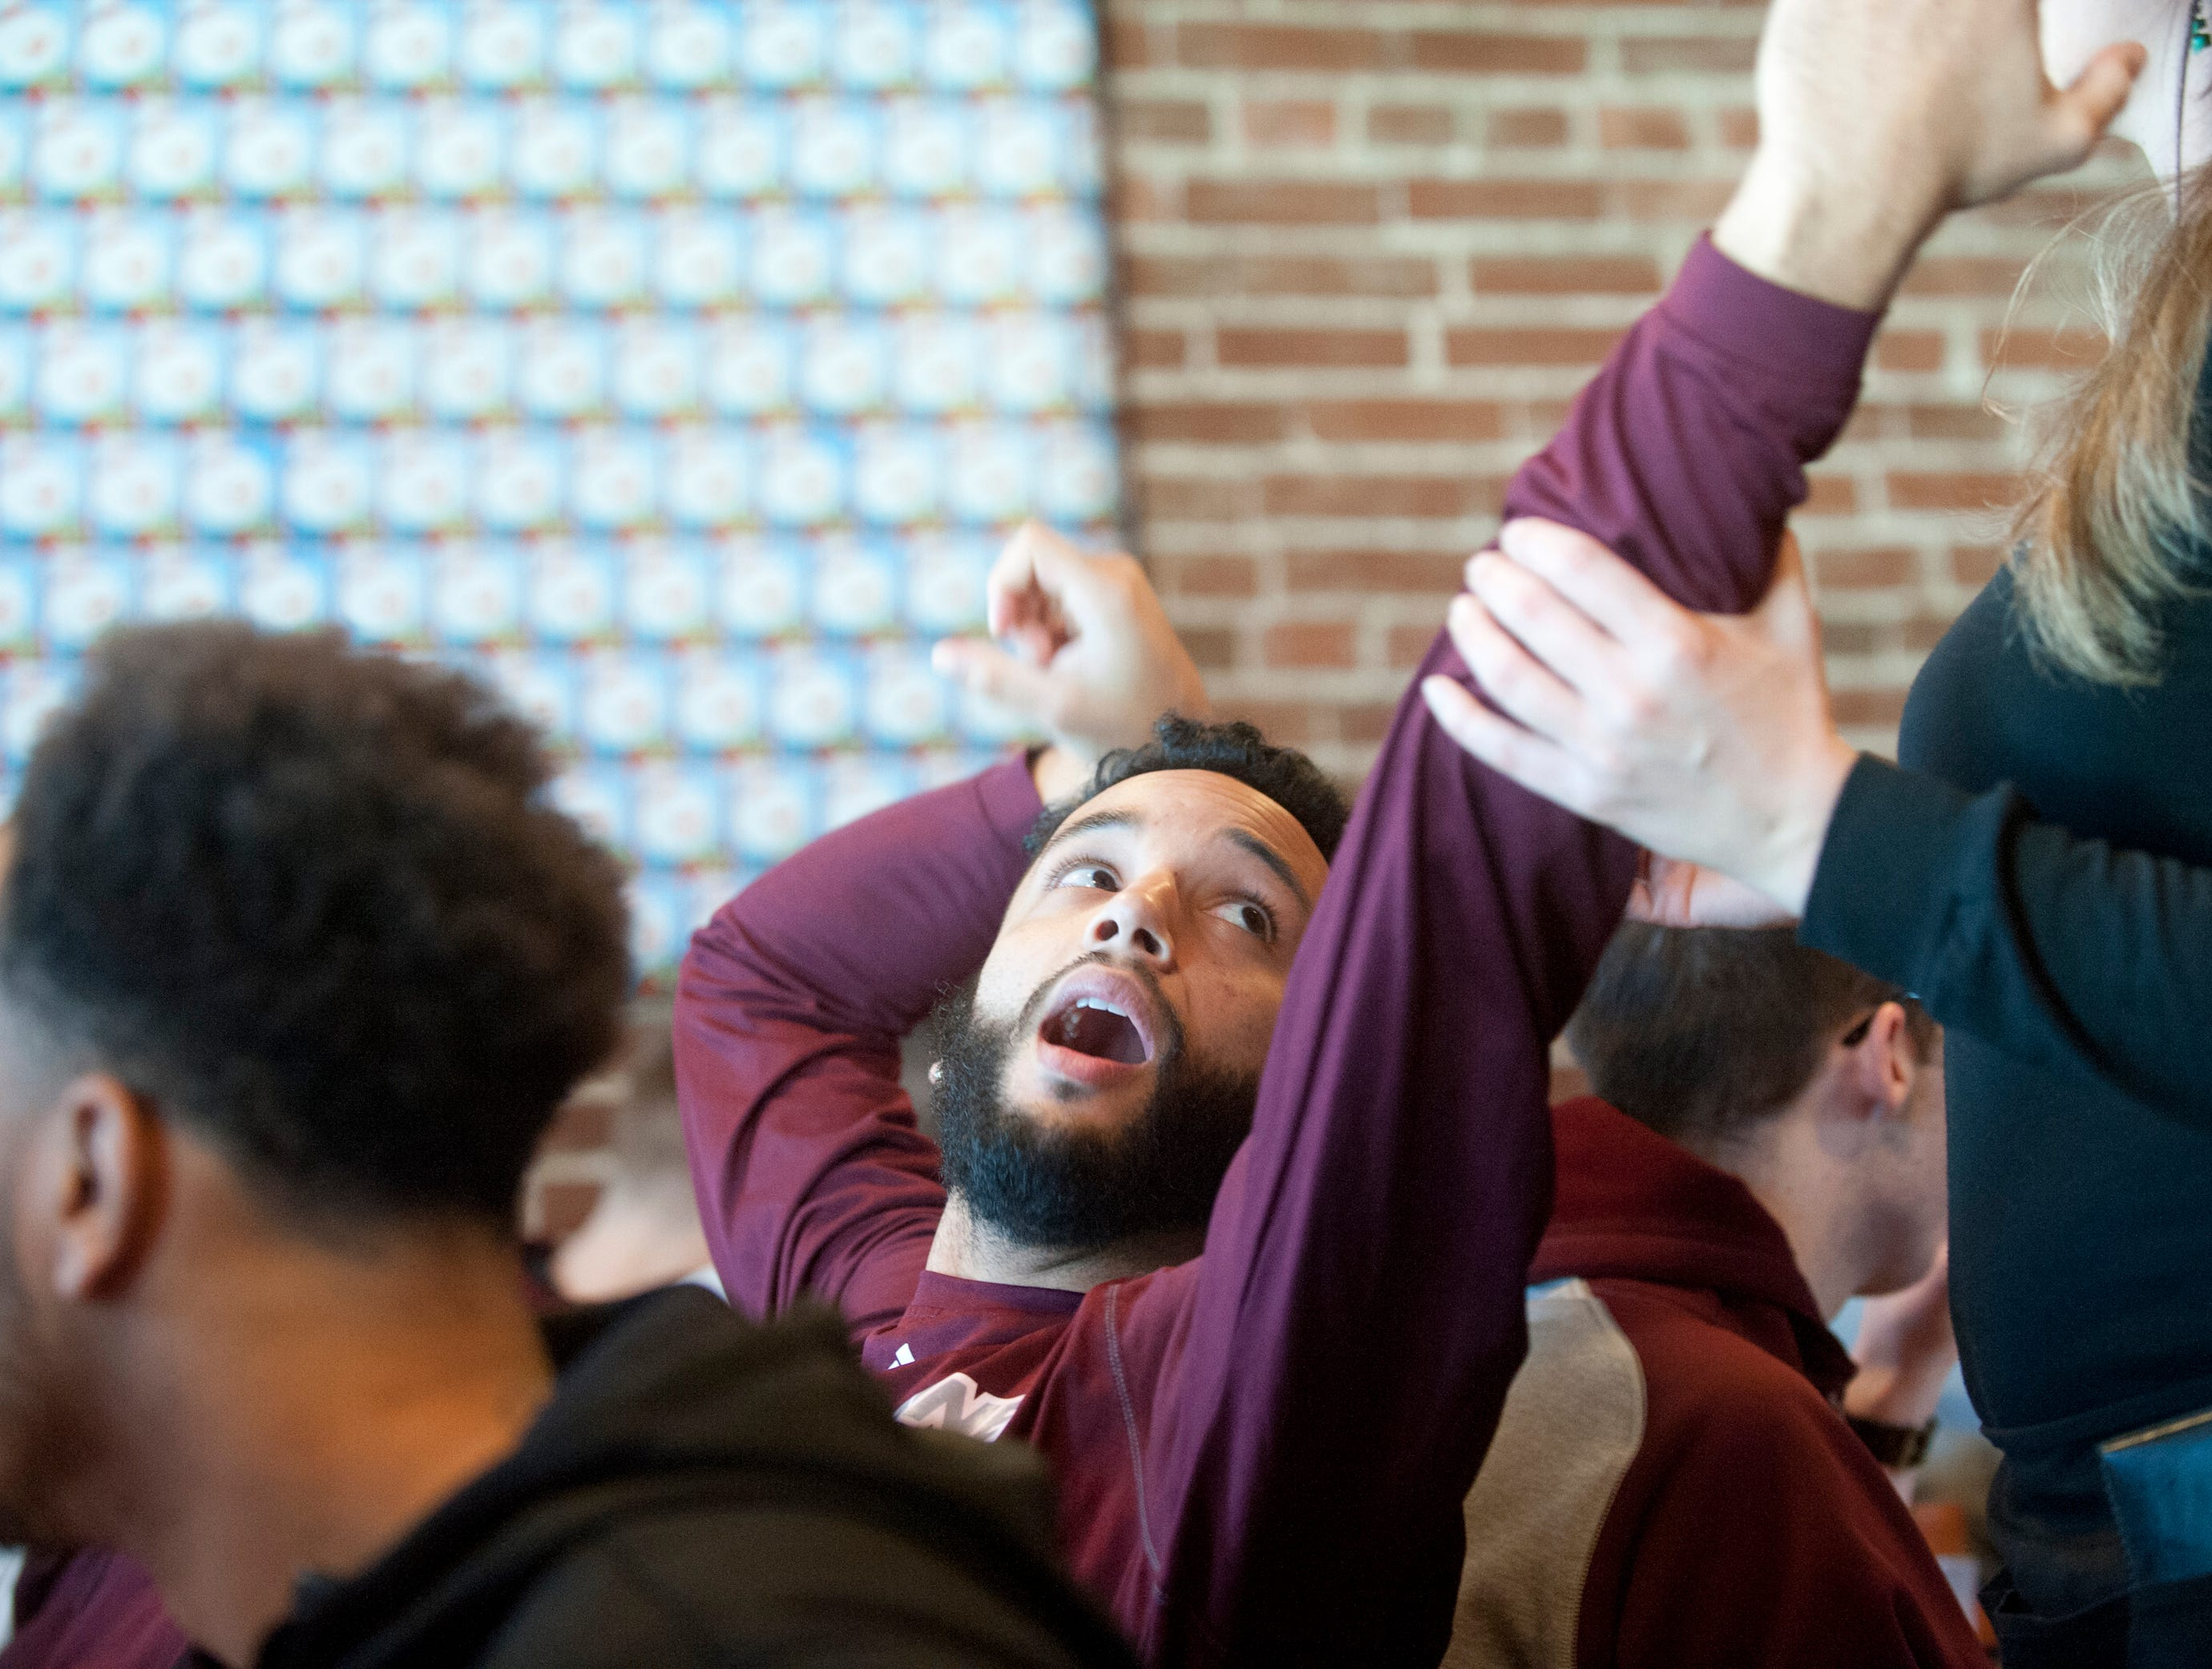 Bellarmine guard Tyler Jenkins, while stretching his arms, bumps into the waitress and reacts to the contact.14December 2018